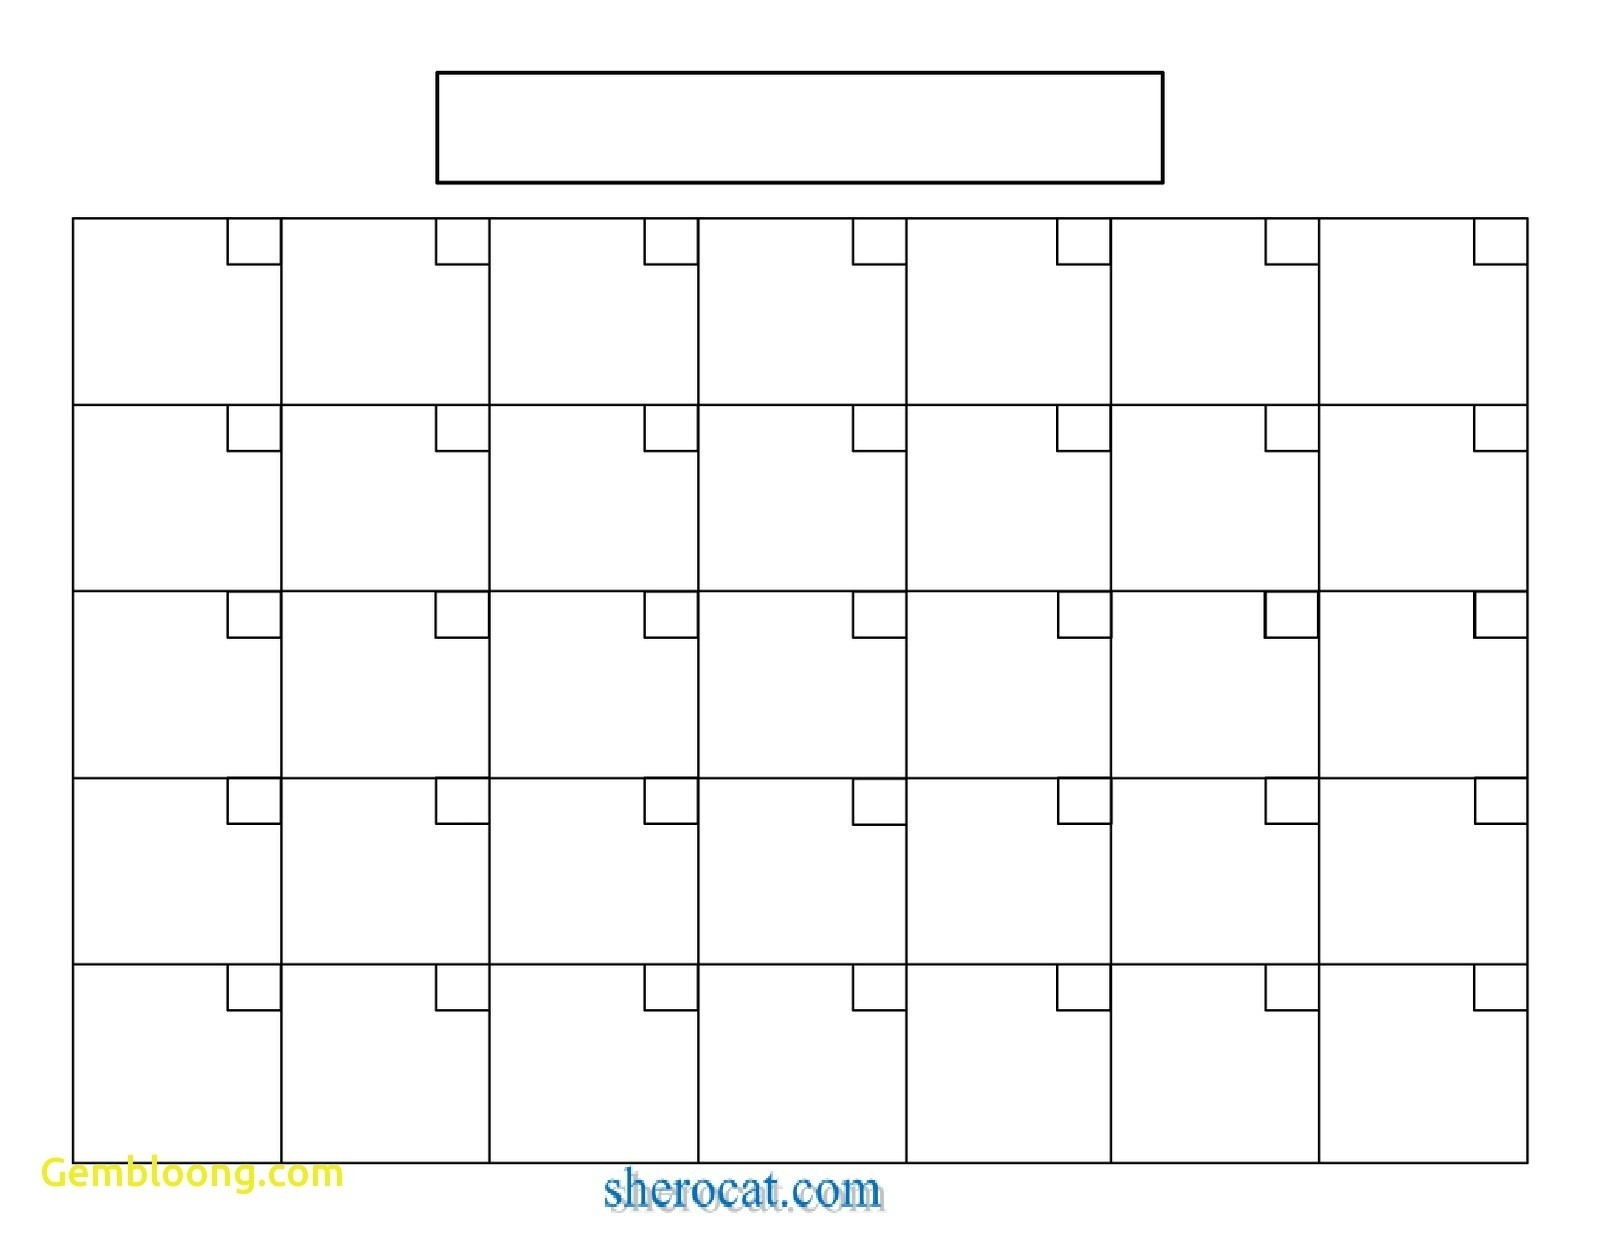 Free Printable Blank Calendar Pages Printable Calendar Templates within Blank Calendar Template With Lines